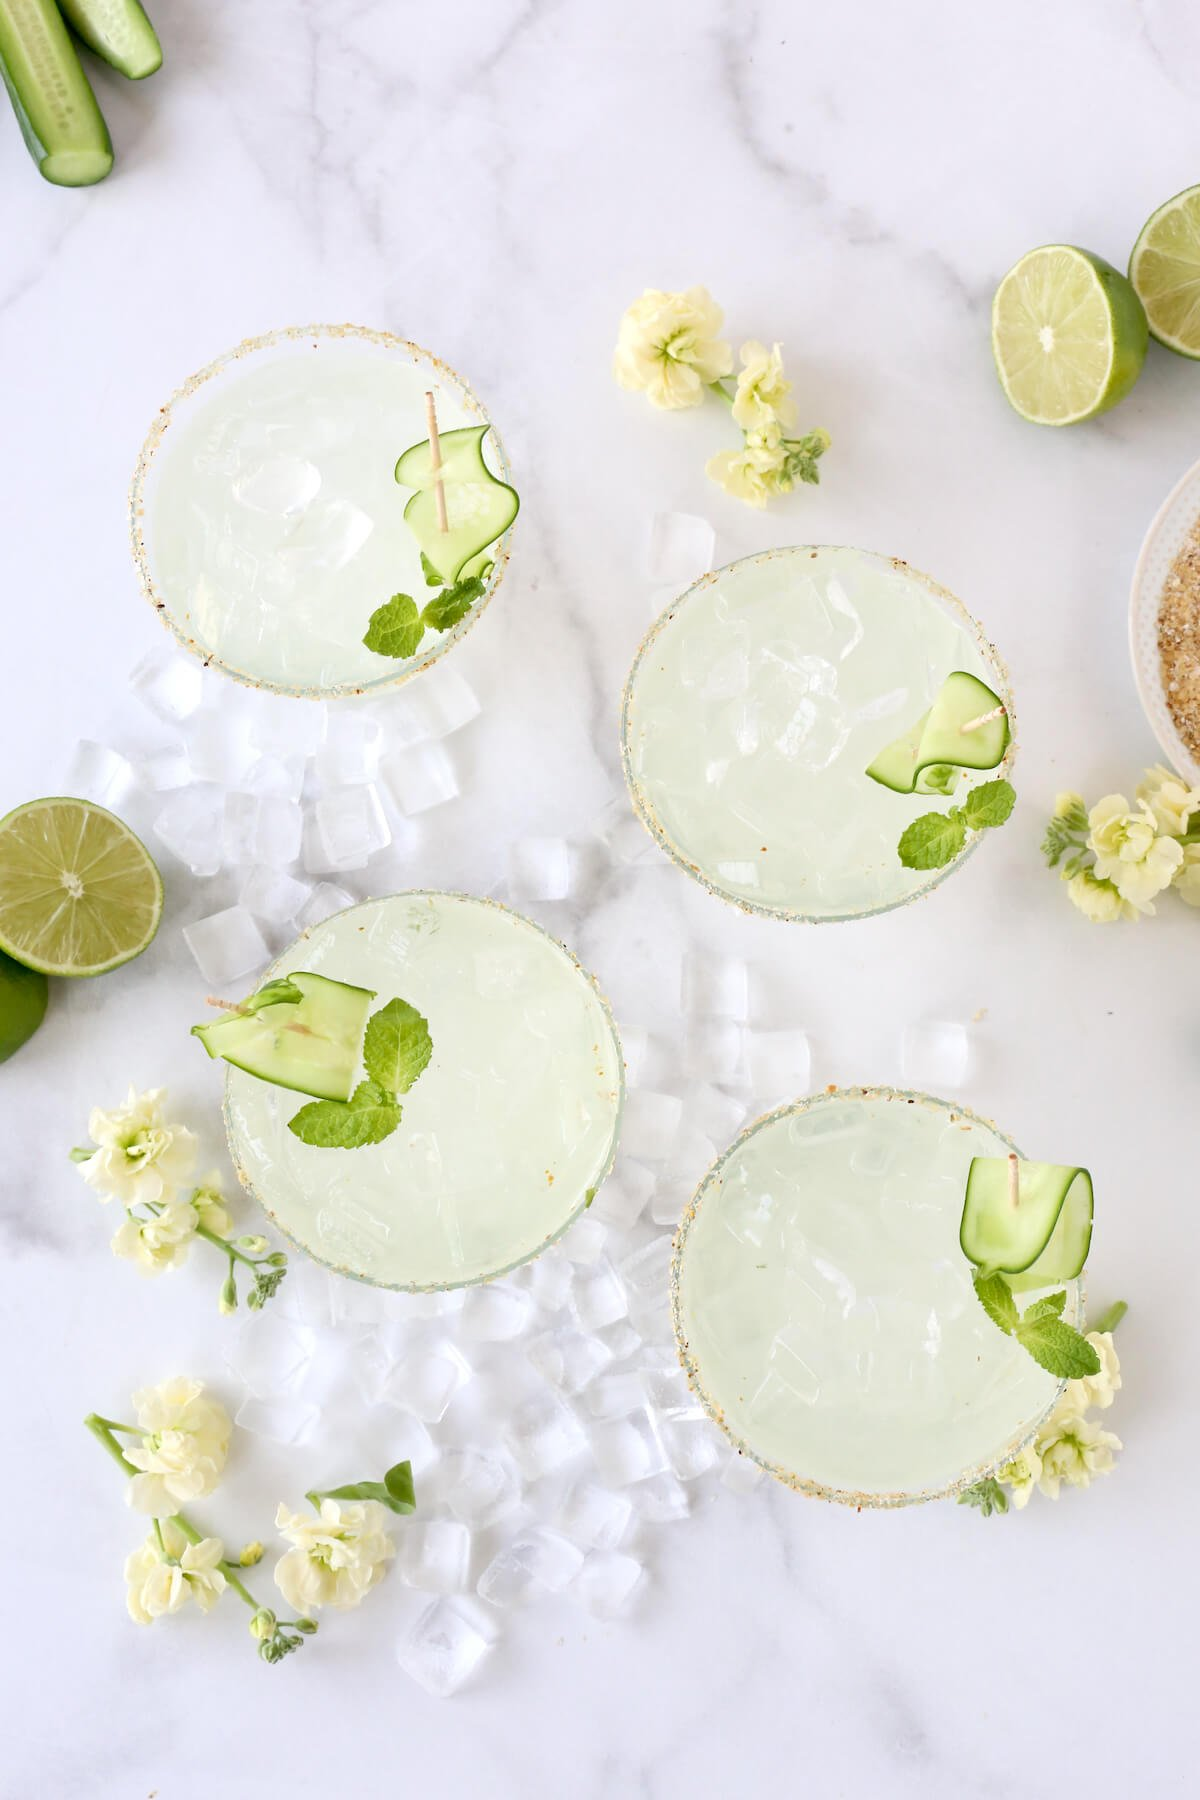 Four glasses filled with cucumber margarita.